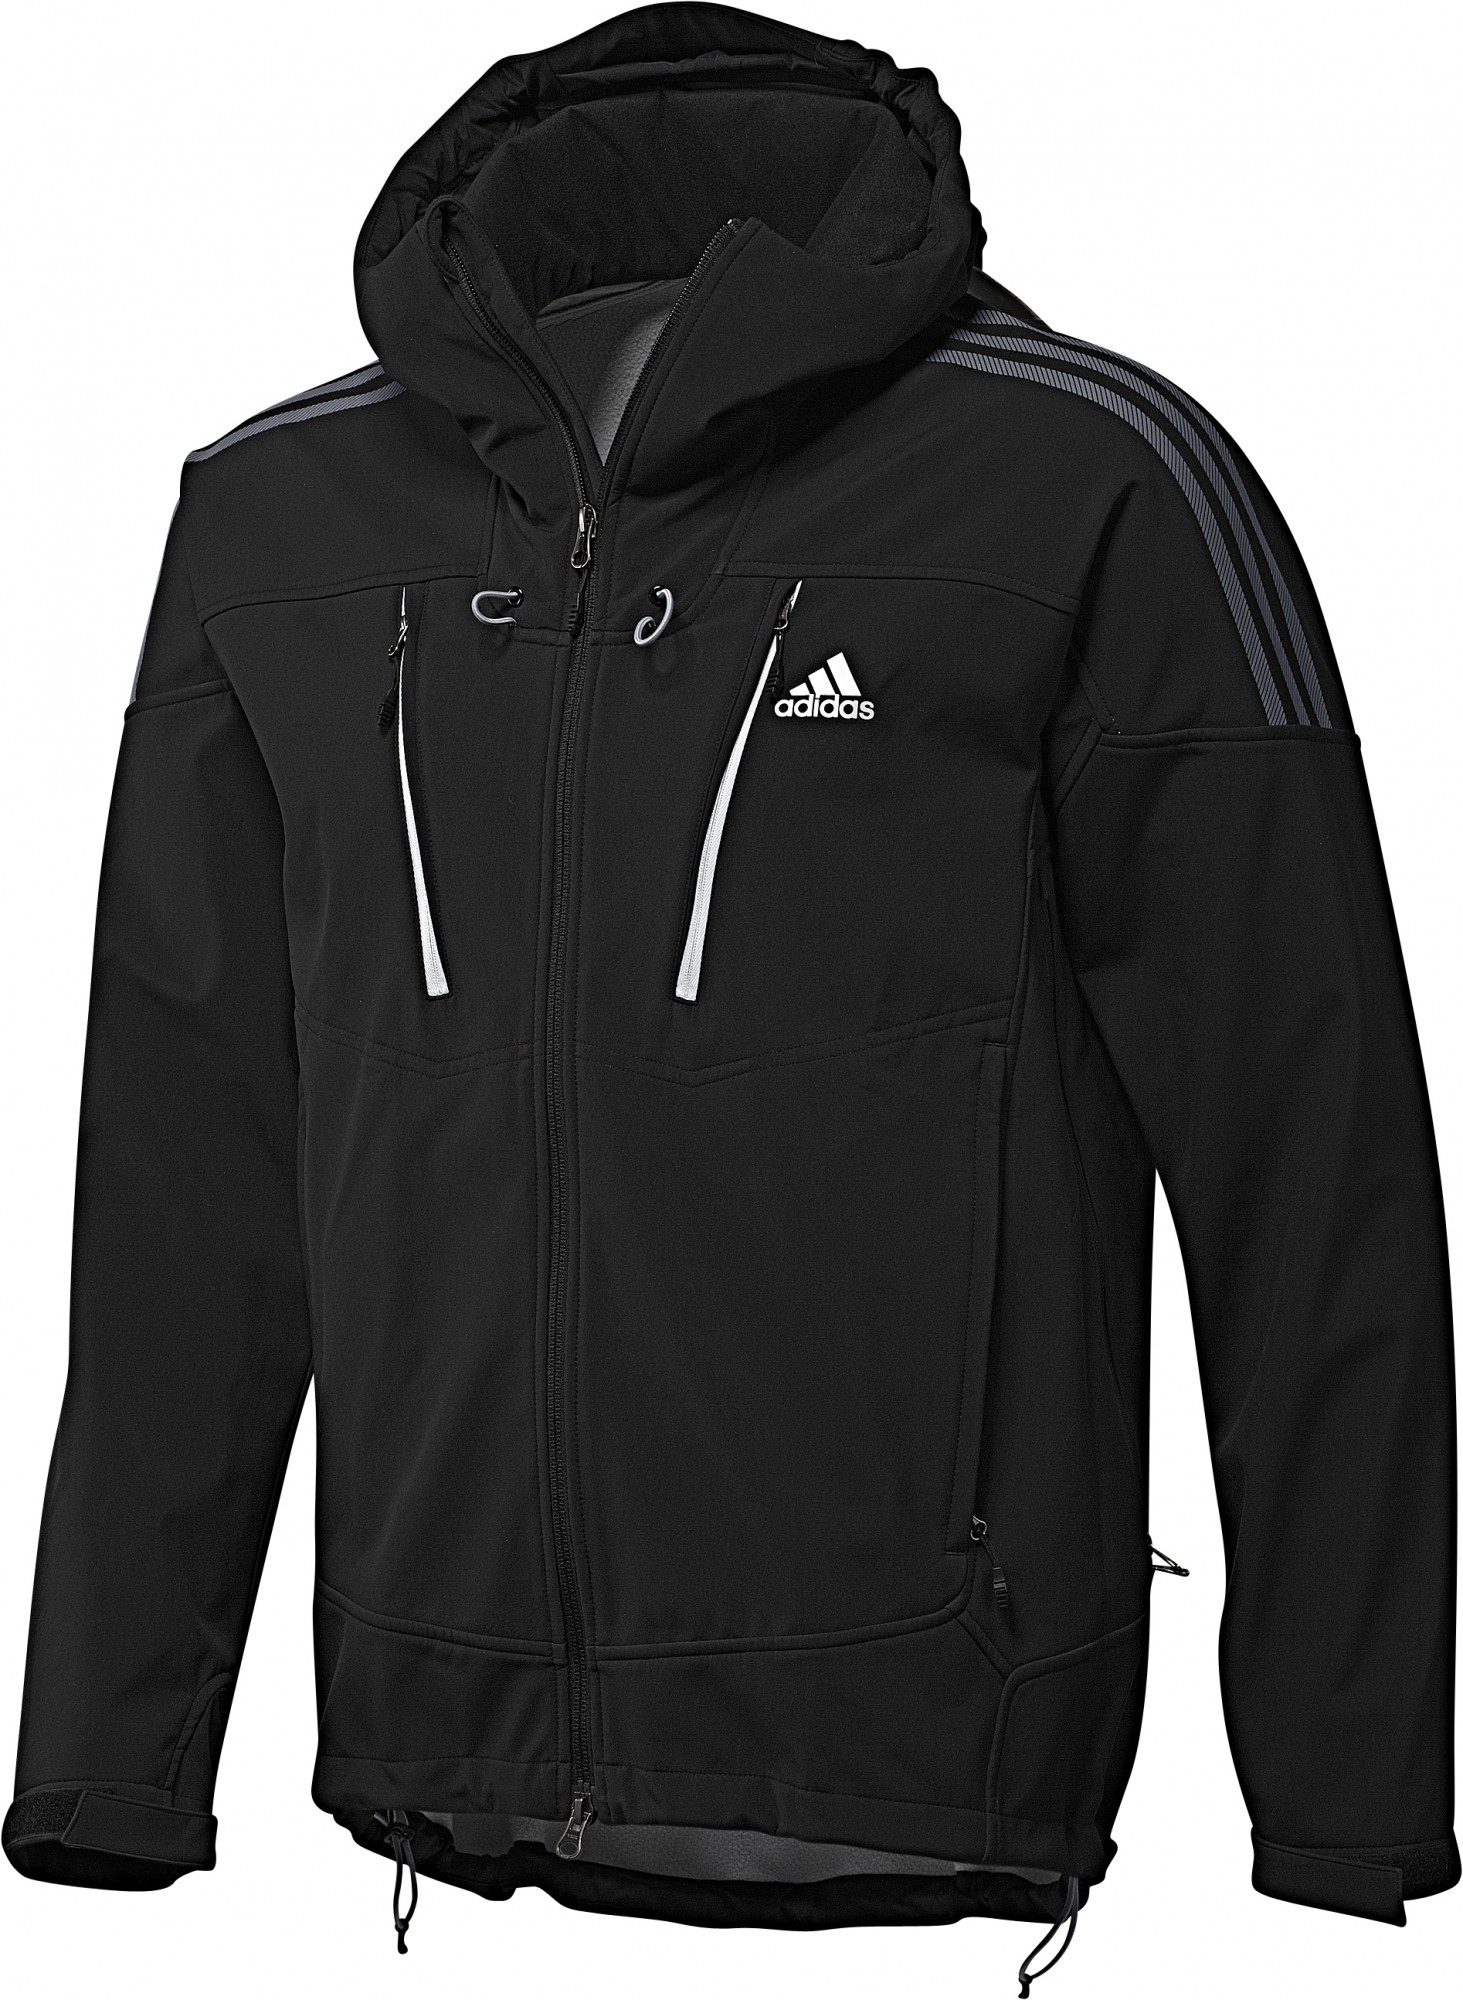 adidas ts softshell hooded jacket gr 50 schwarz softshell jacke funktionsjacke ebay. Black Bedroom Furniture Sets. Home Design Ideas